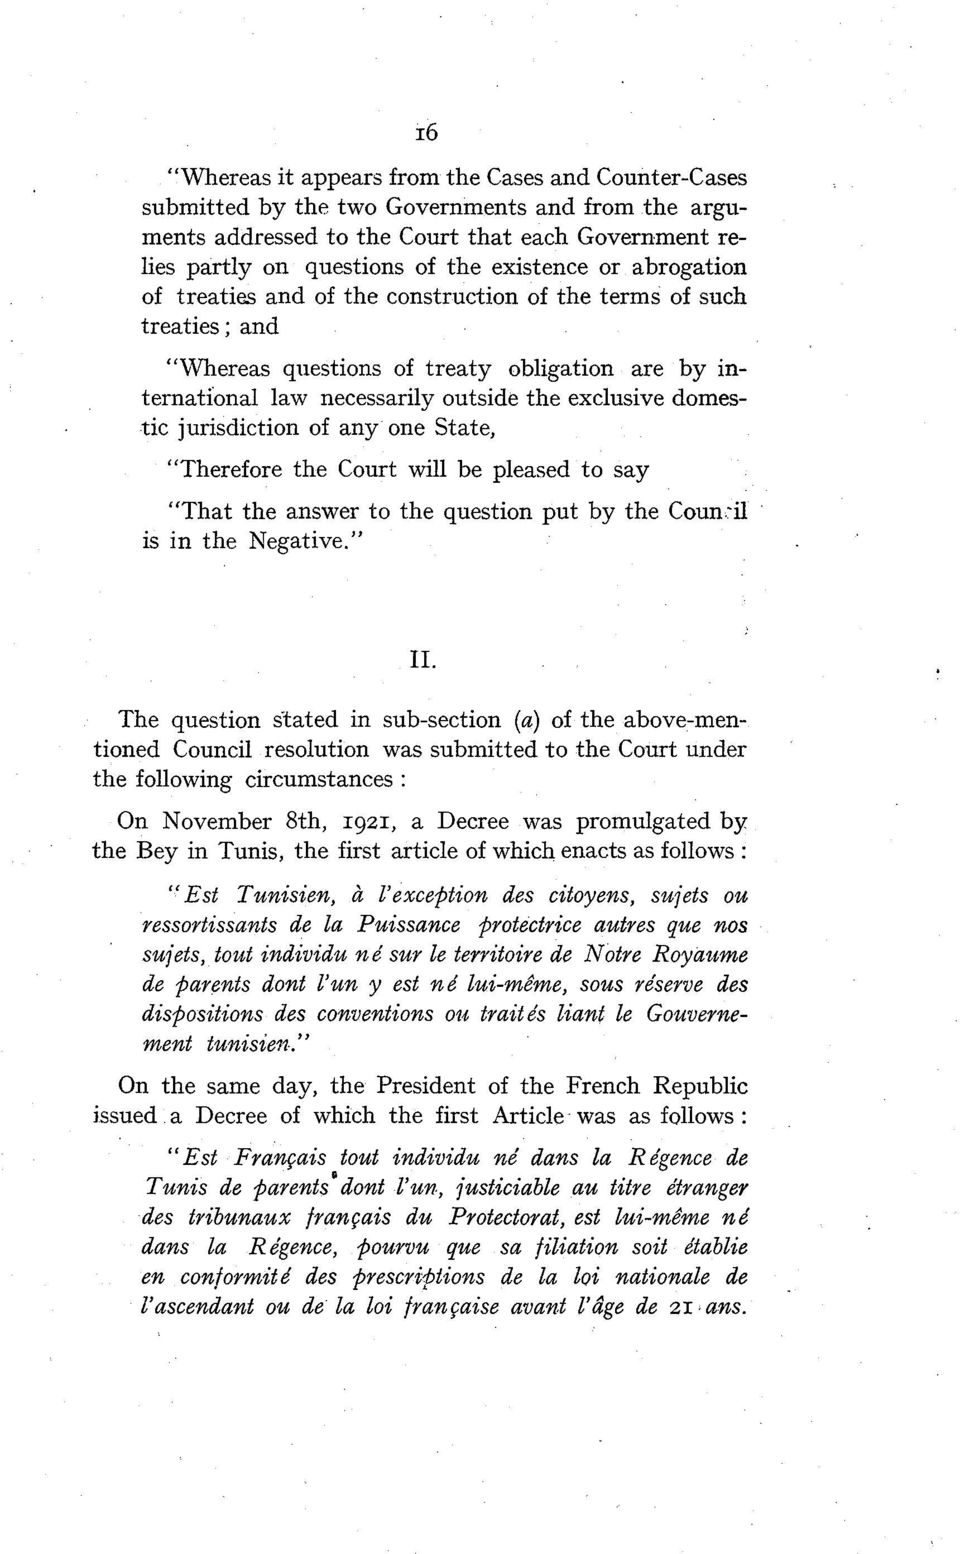 "jurisdiction of any one State, ""Therefore the Court will be pleased to Say ""That the answer to the question put by the Coun-il is in the Negative."" II."